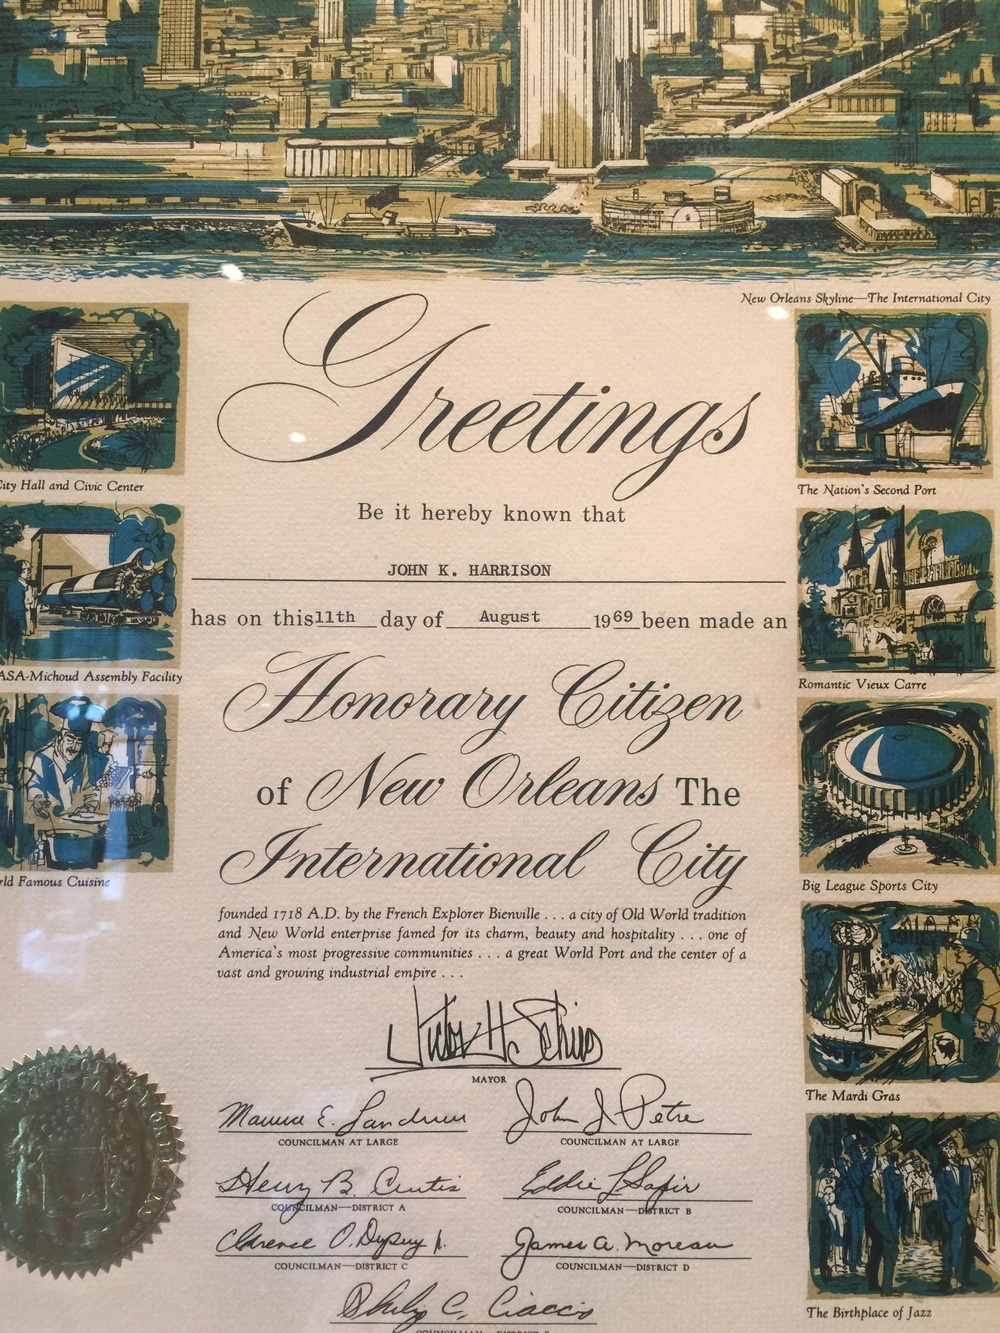 Honorary Citizenship of New Orleans